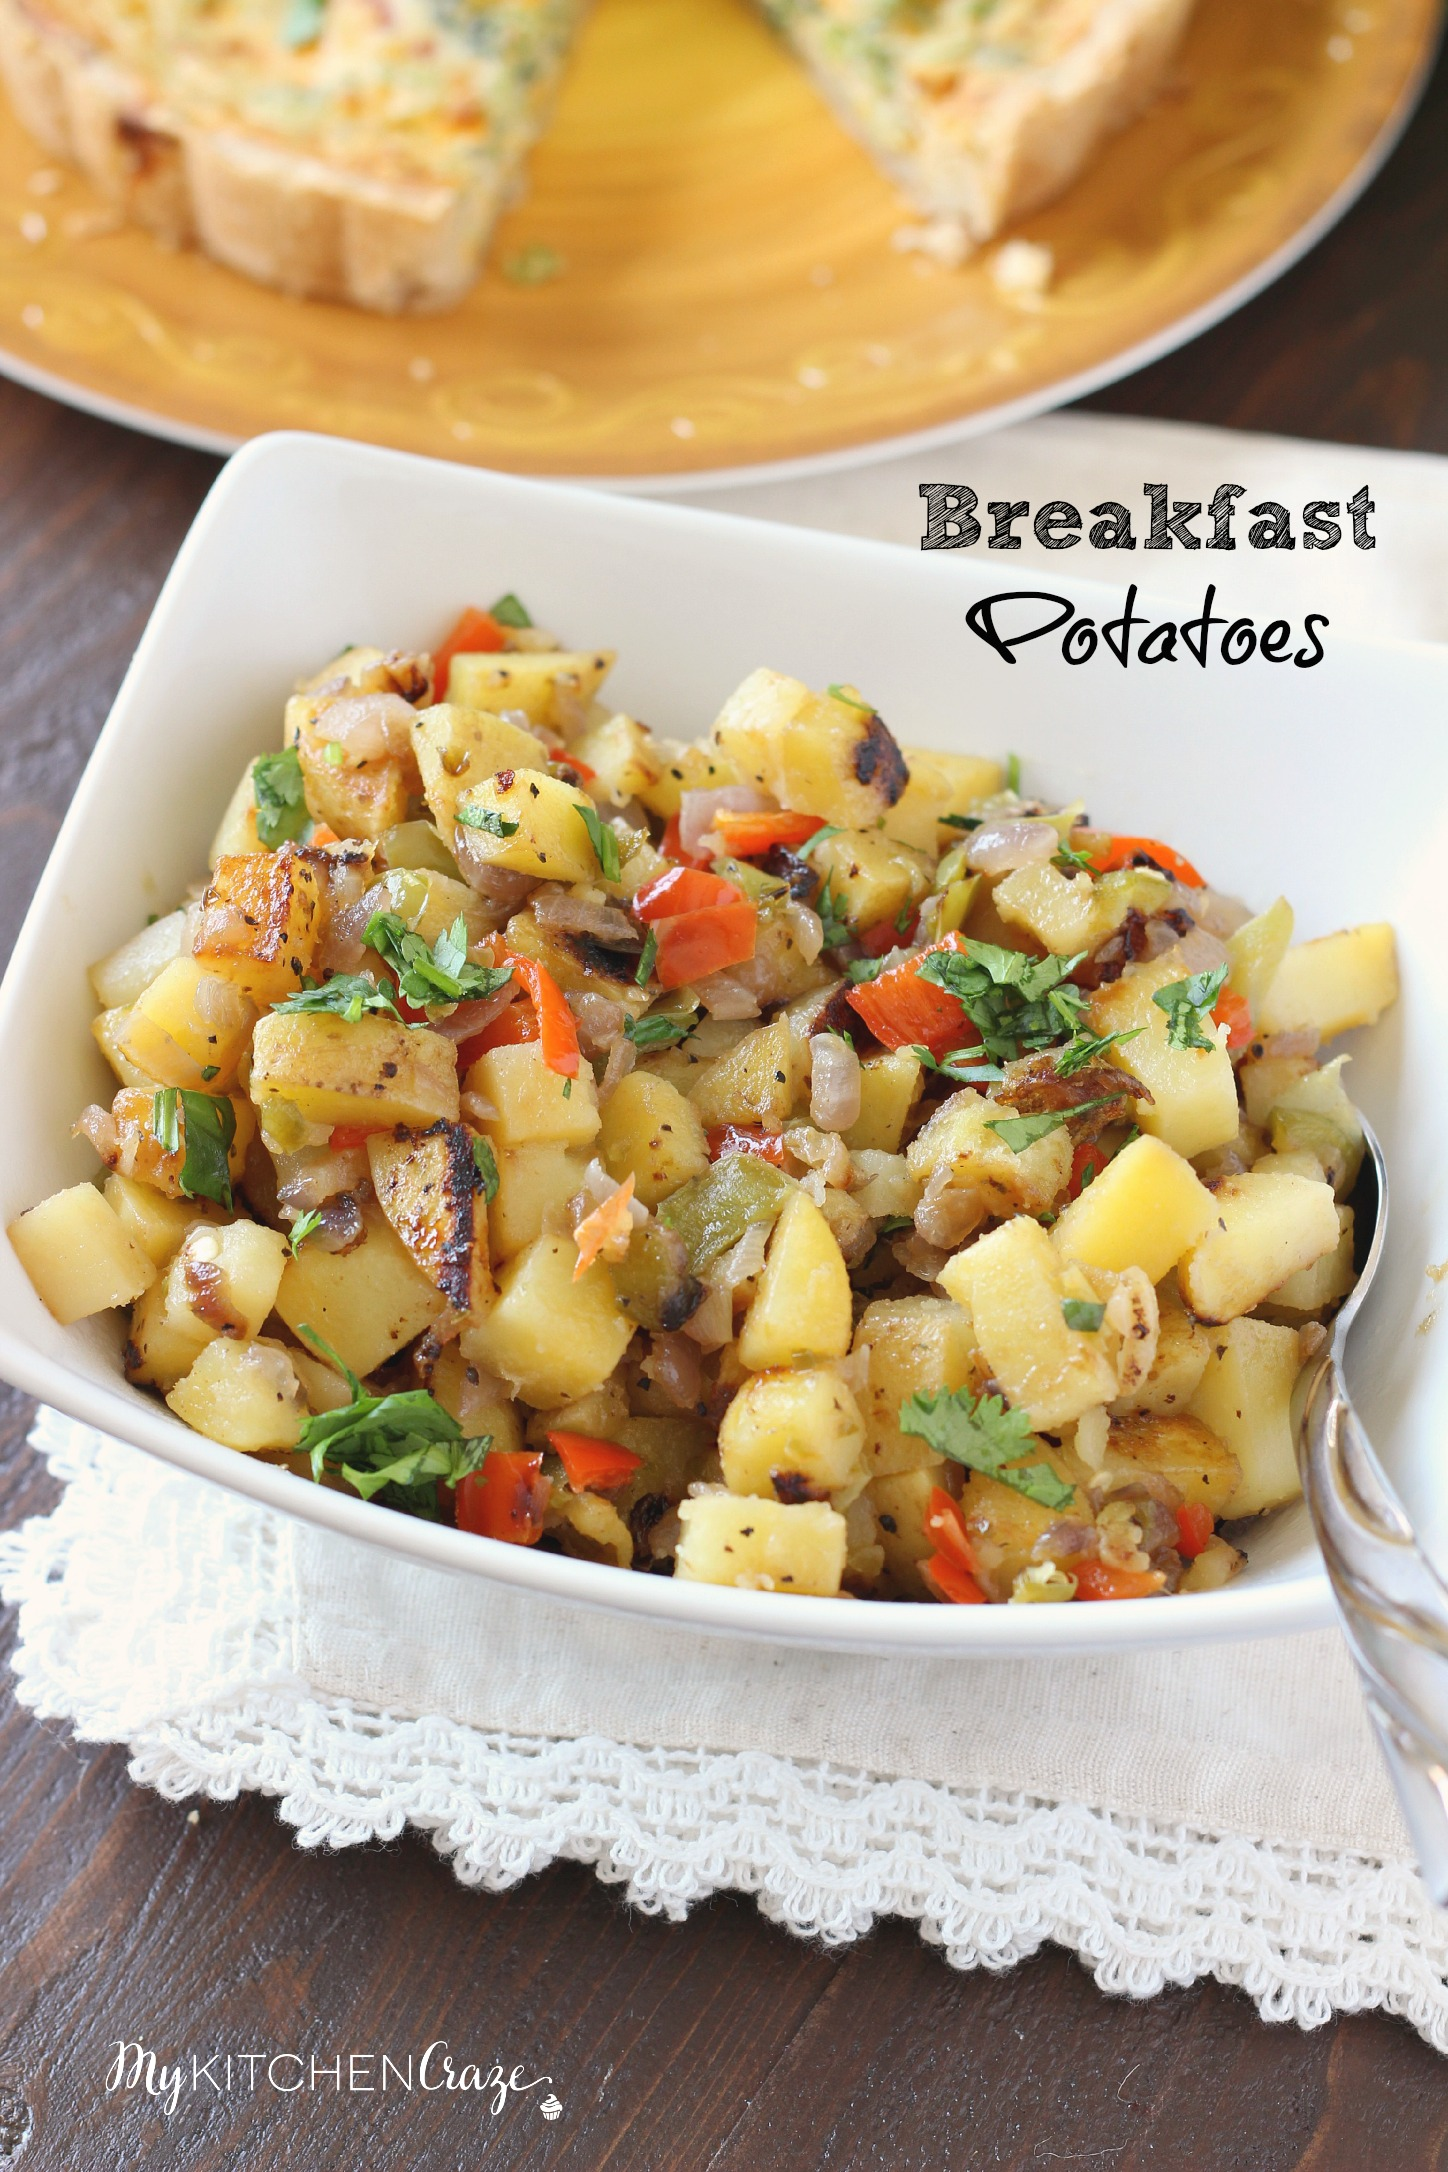 Breakfast Potatoes ~ mykitchencraze.com ~ A simple recipe for breakfast potatoes with crispy edges that are seasoned to perfection!